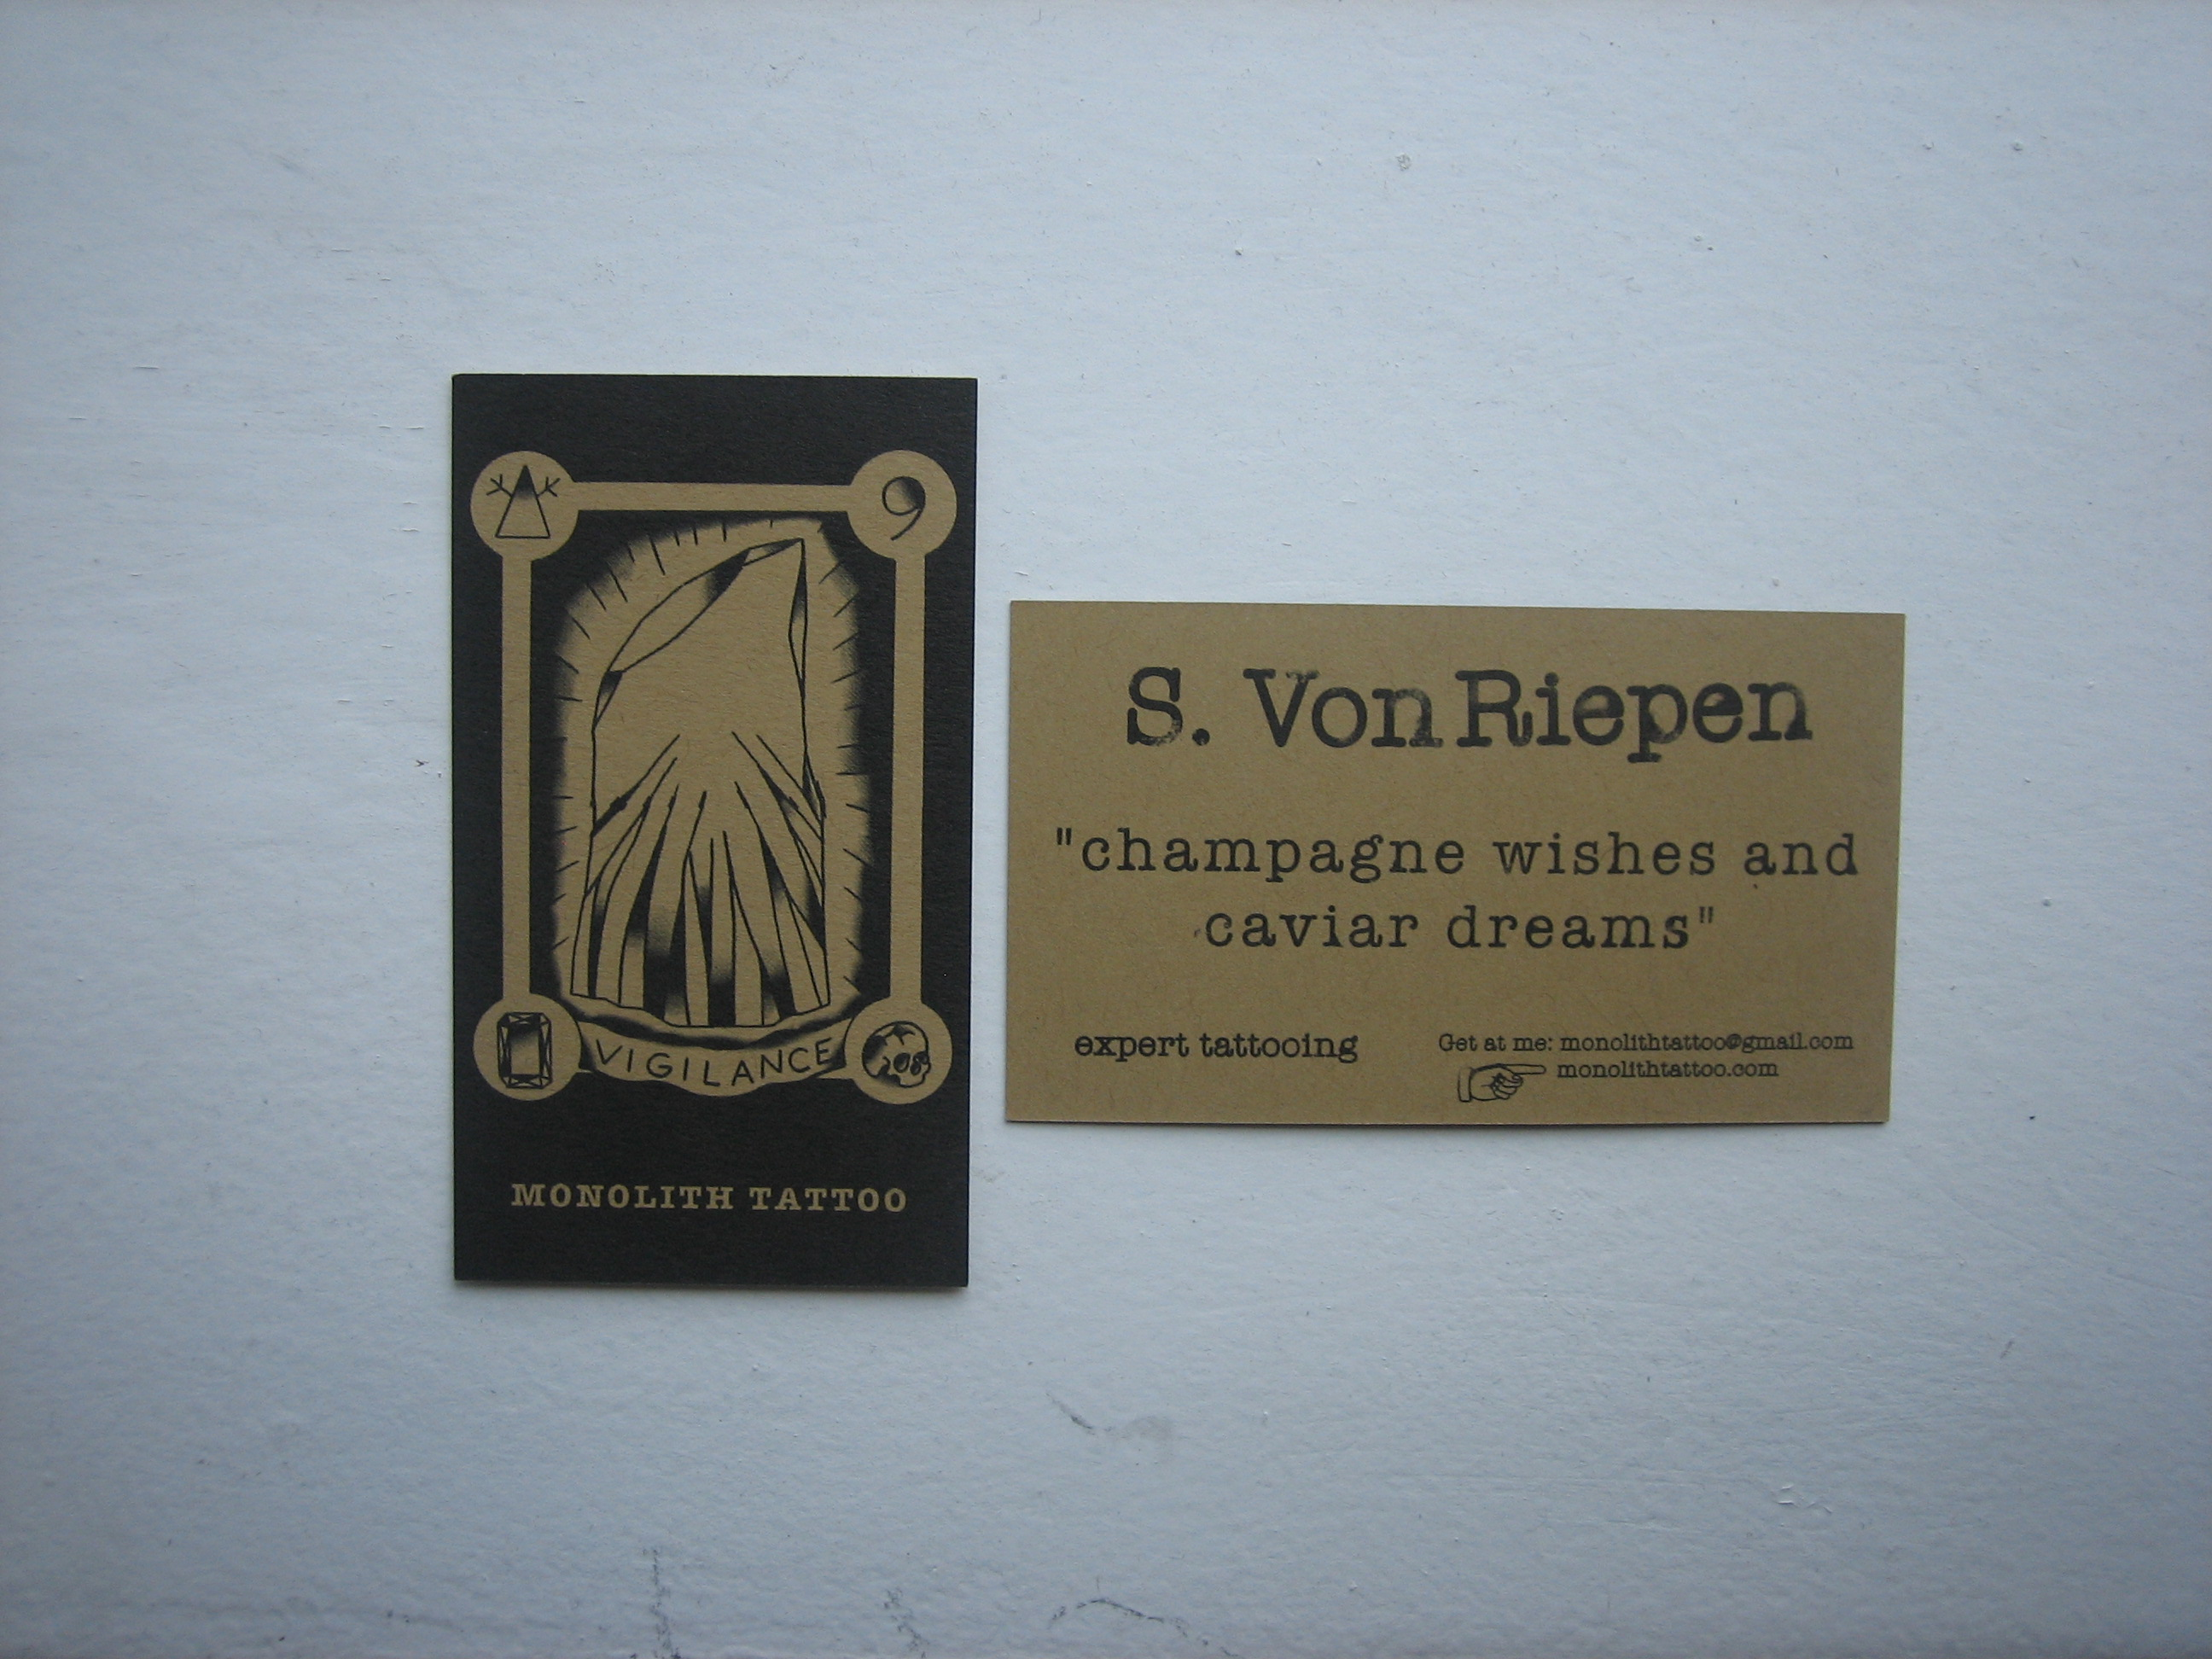 Here are the cards I designed for Monolith Tattoo. My boy SVR's brand.